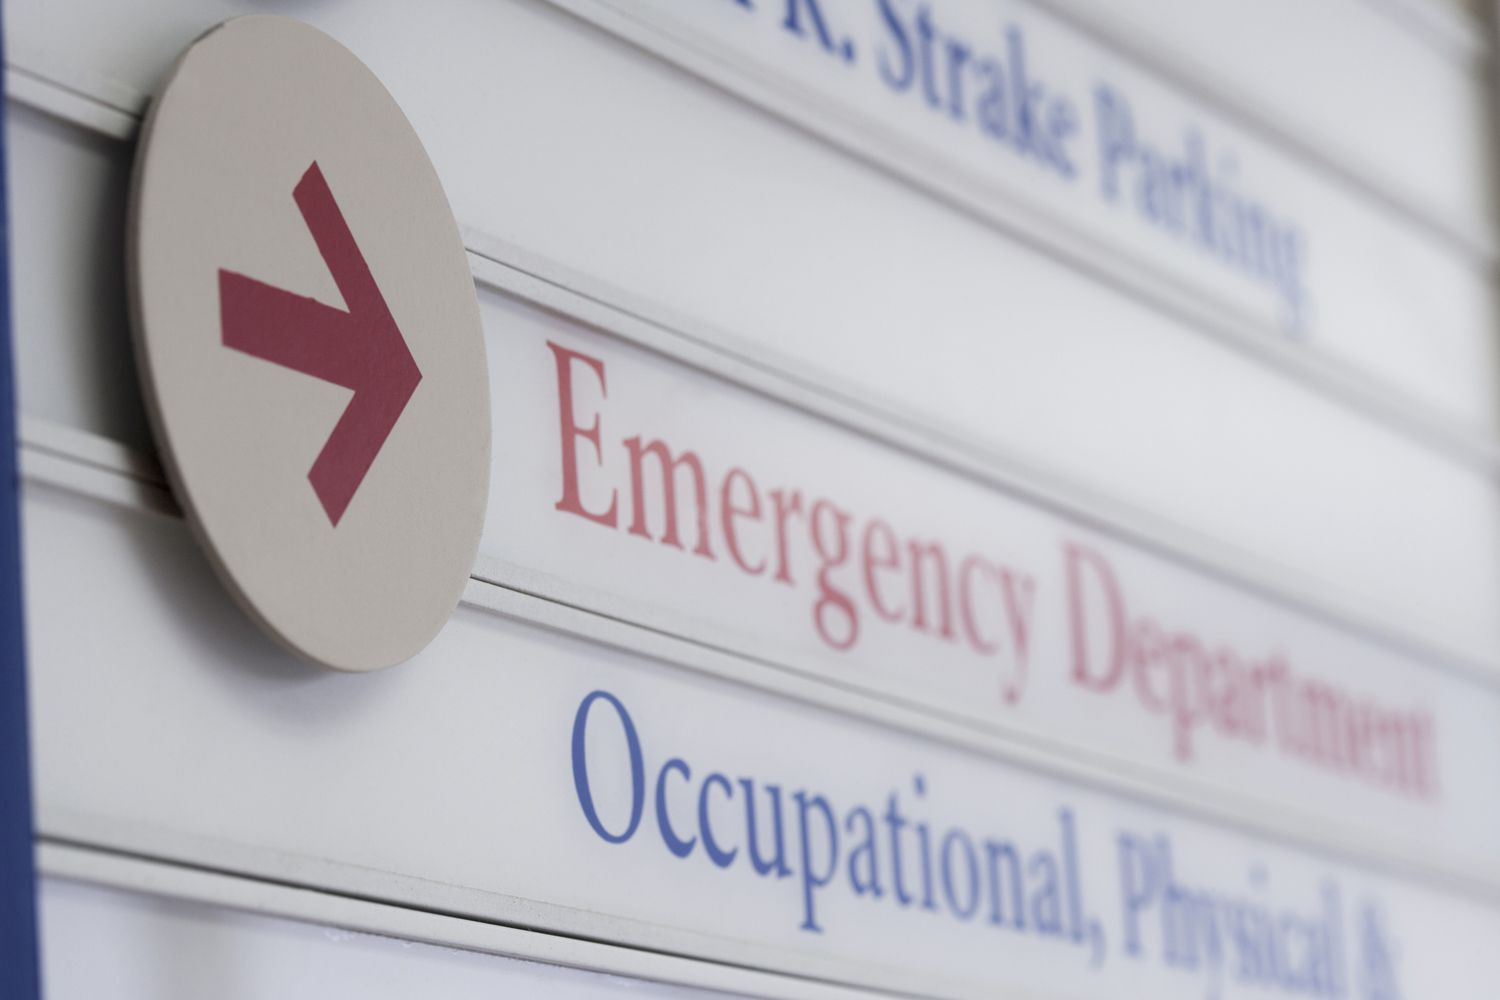 A sign pointing to the emergency room.